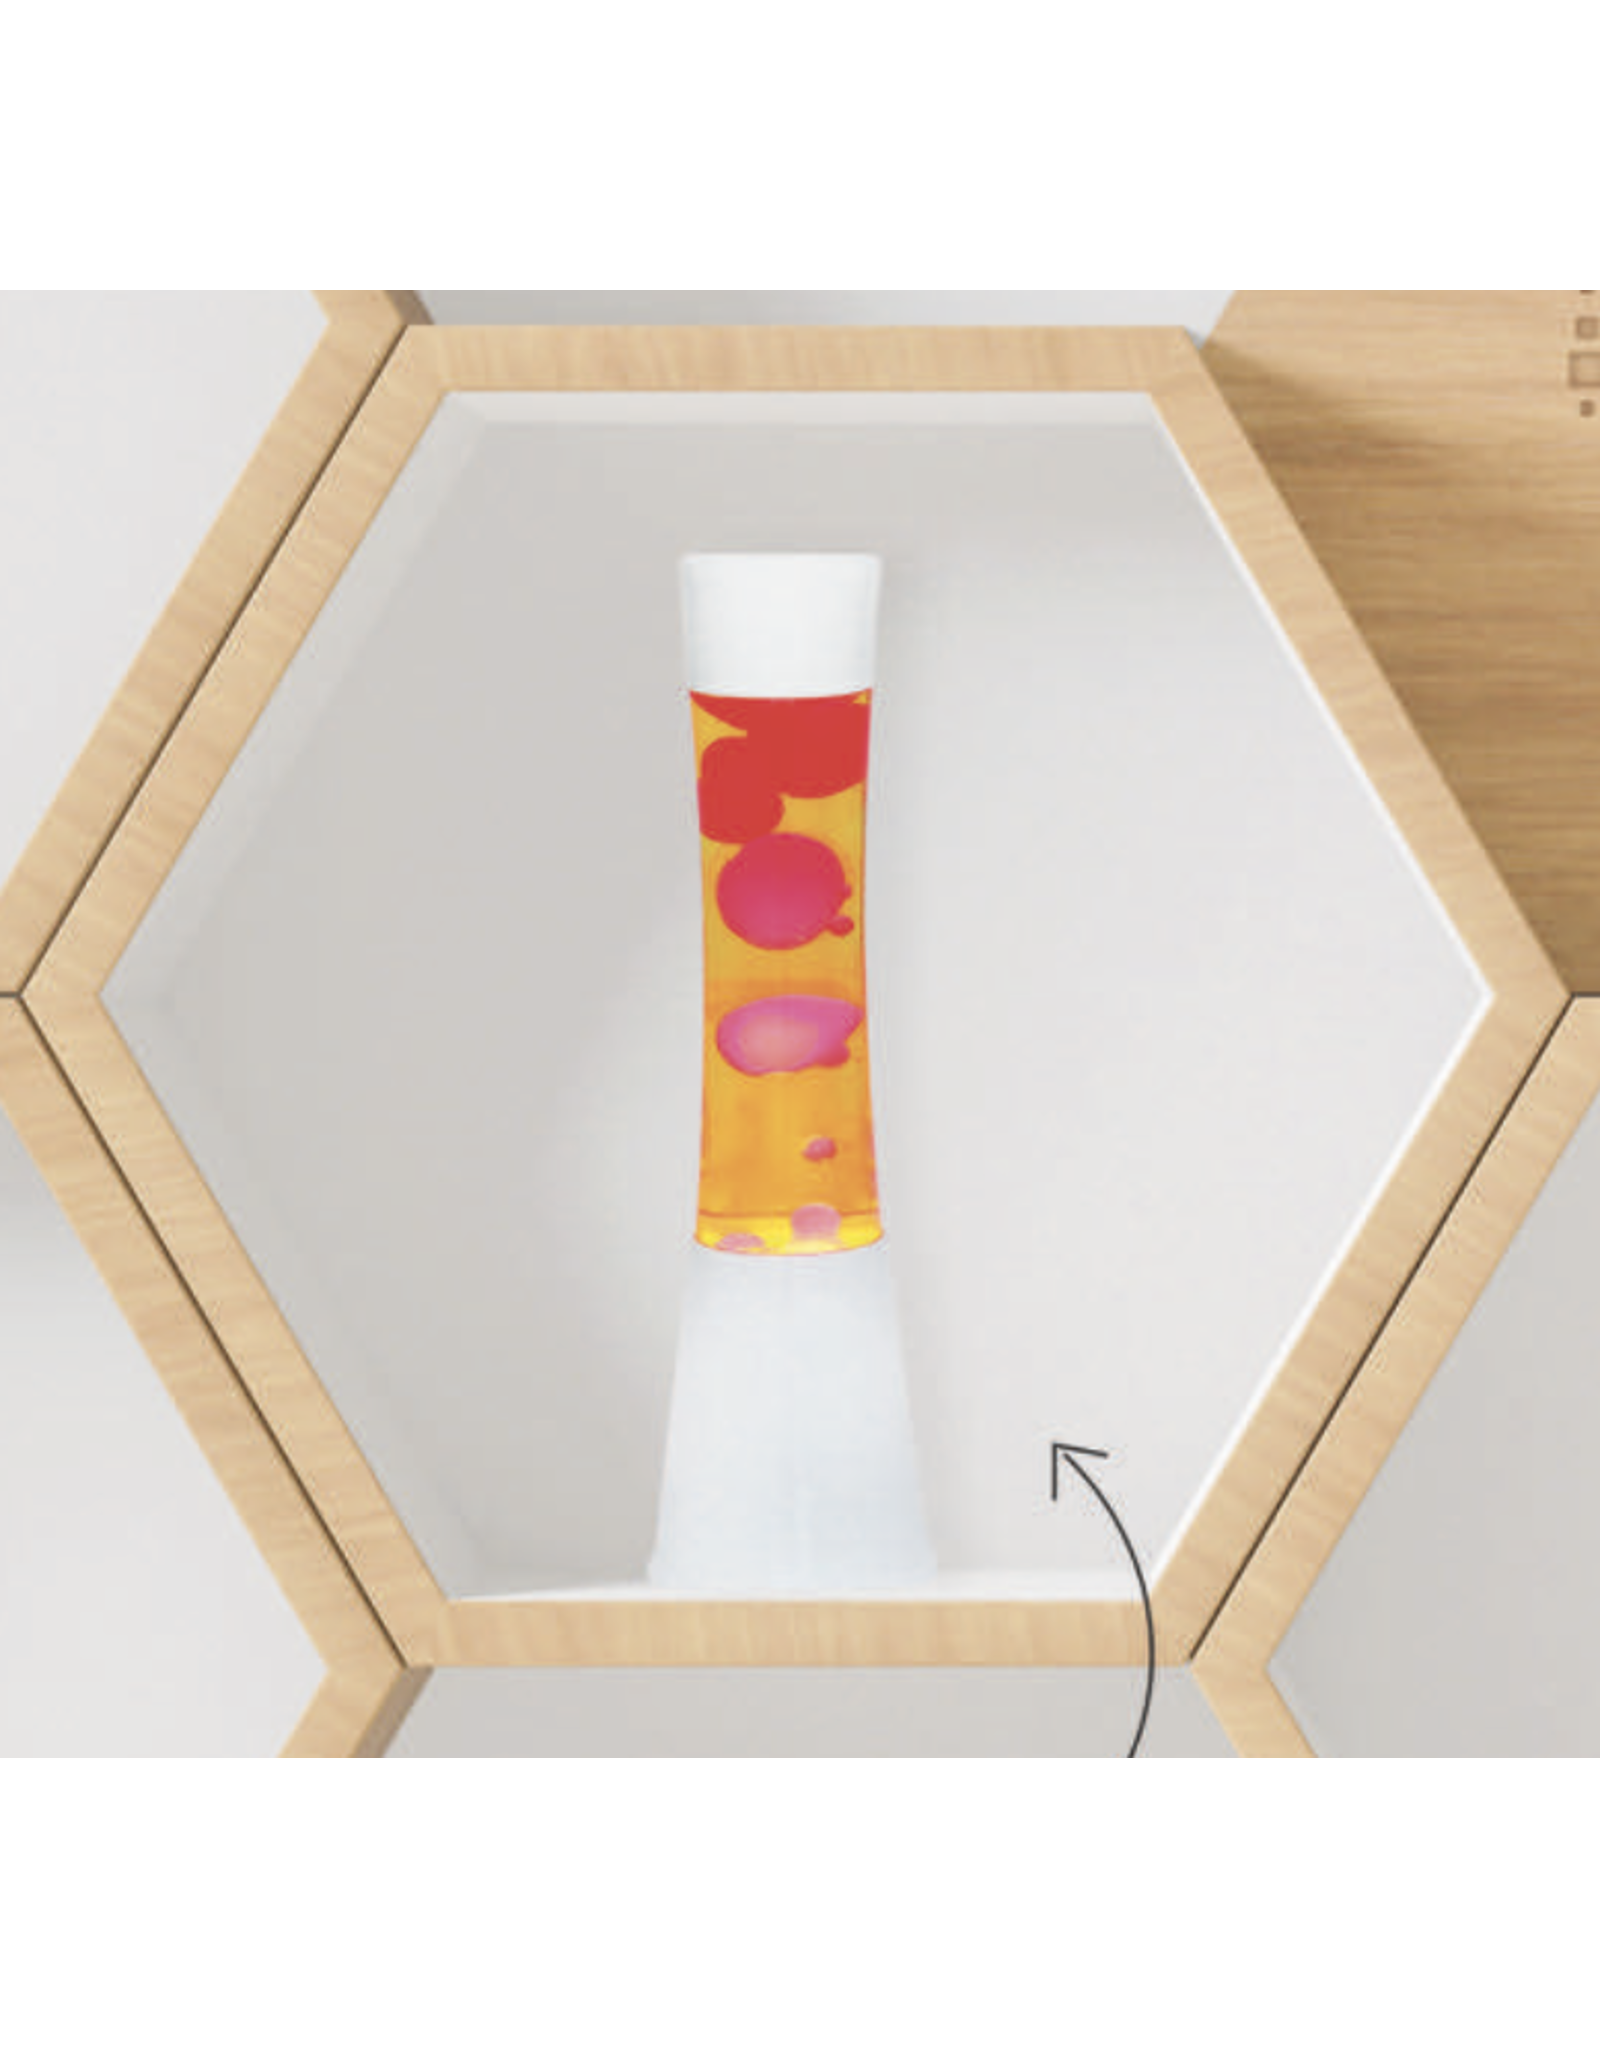 lava lamp with white base, pink lava and yellow fluid